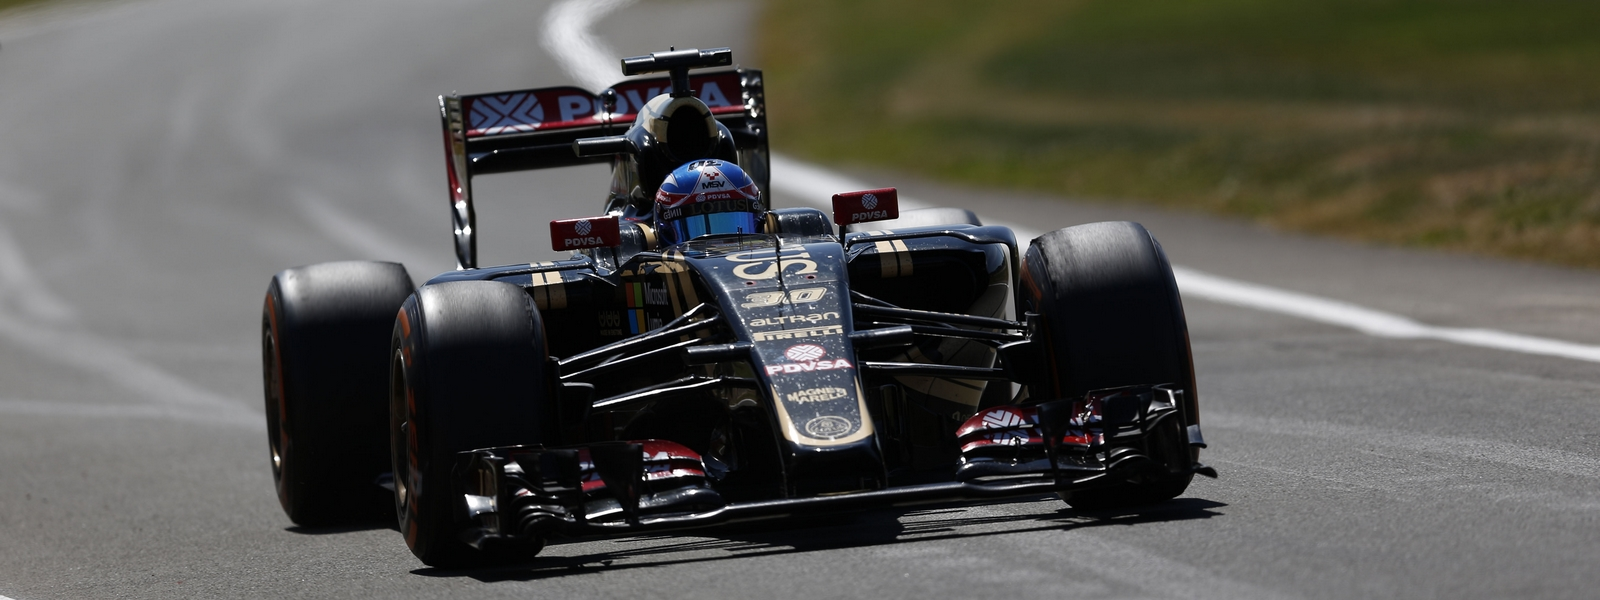 Motorsports: FIA Formula One World Championship 2015, Grand Prix of Great Britain,  #30 Jolyon Palmer (GBR, Lotus F1 Team),  *** Local Caption *** +++ www.hoch-zwei.net +++ copyright: HOCH ZWEI +++